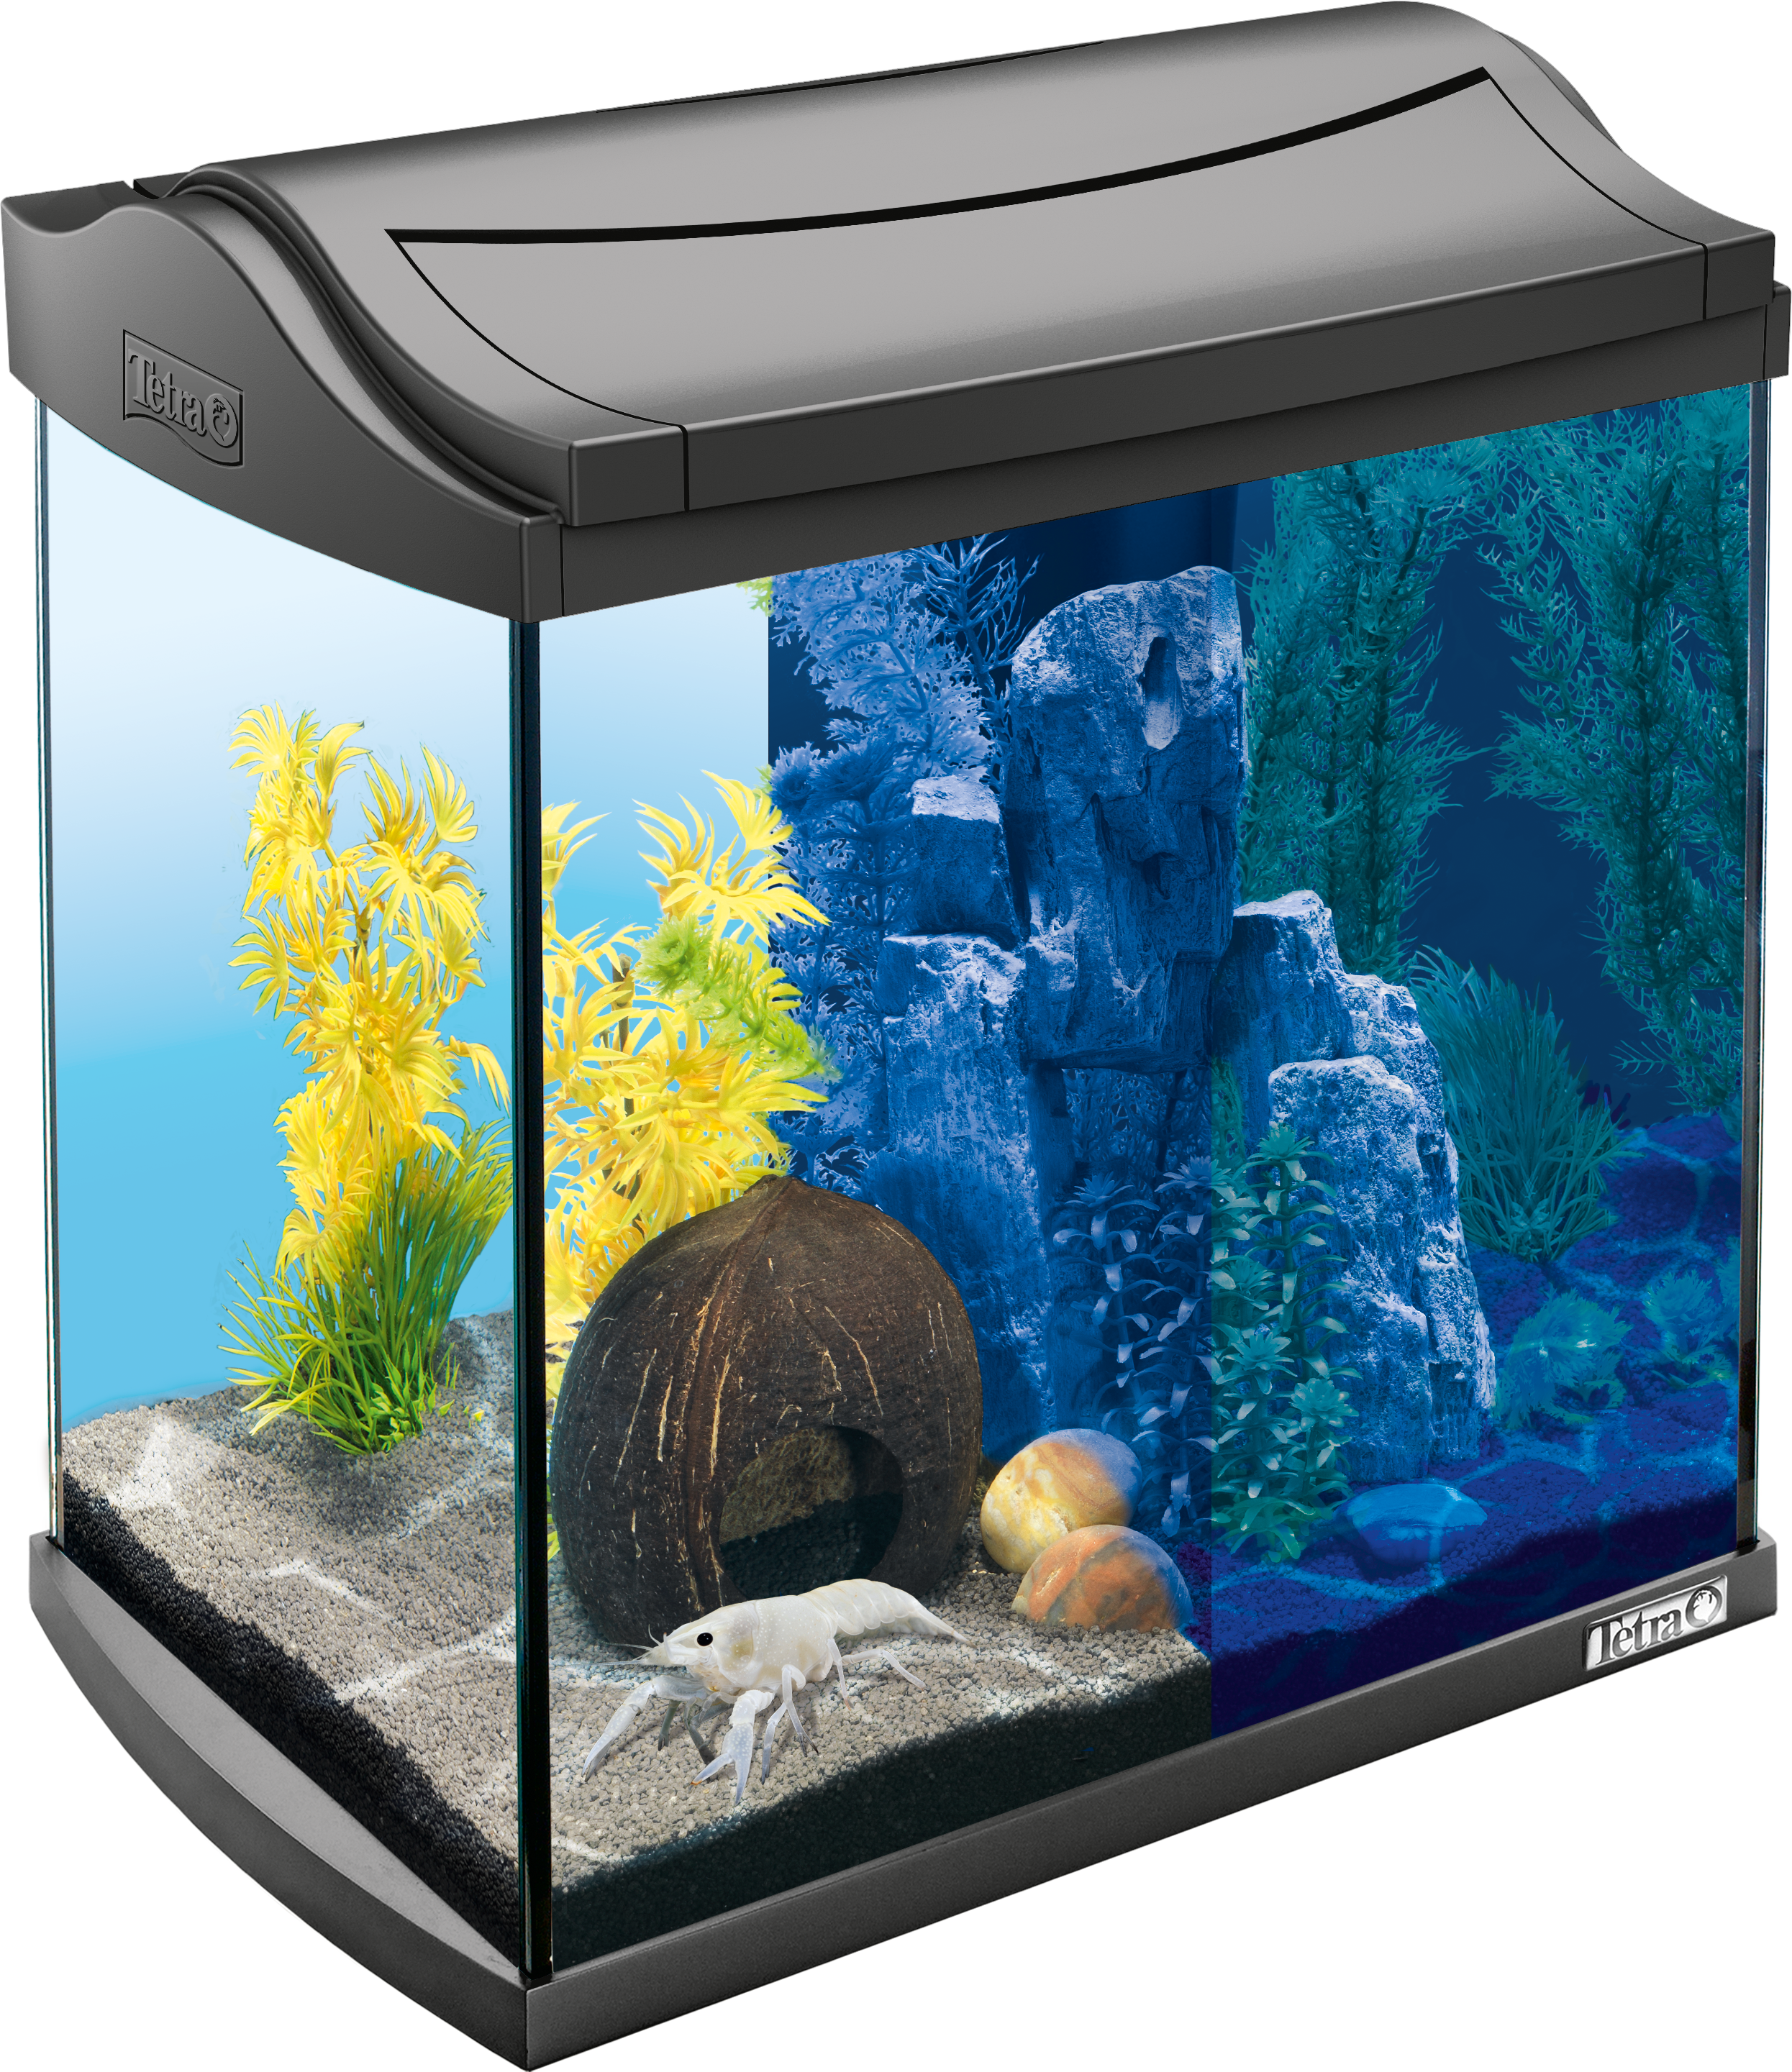 30l tetra aquaart led aquarium crayfish. Black Bedroom Furniture Sets. Home Design Ideas